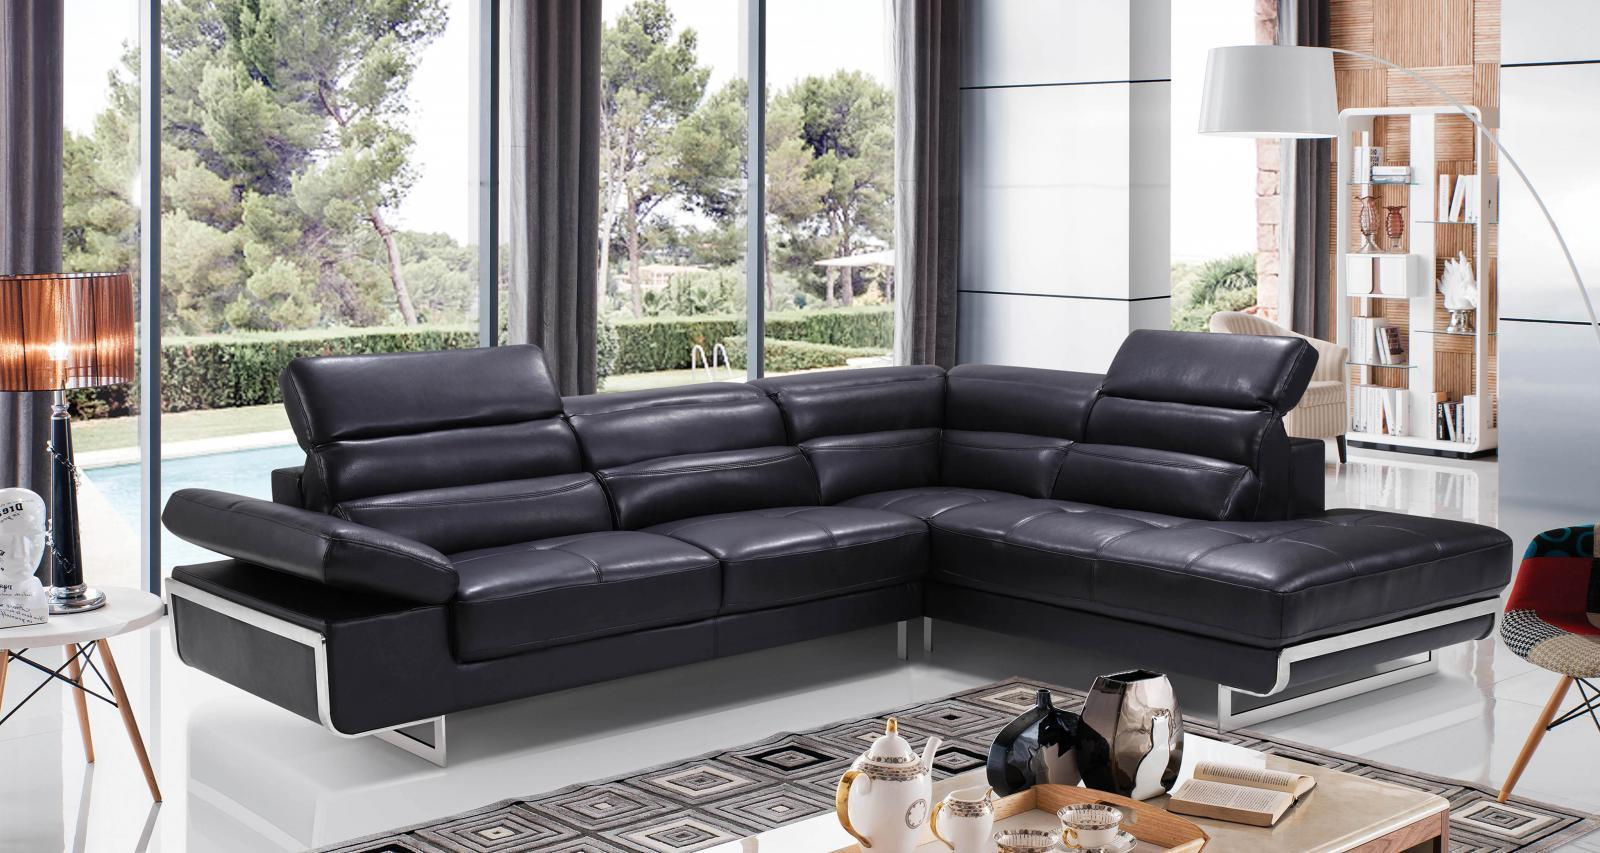 ESF 2347 Chic Black Leather Sectional Sofa Right Hand Facing Contemporary Modern